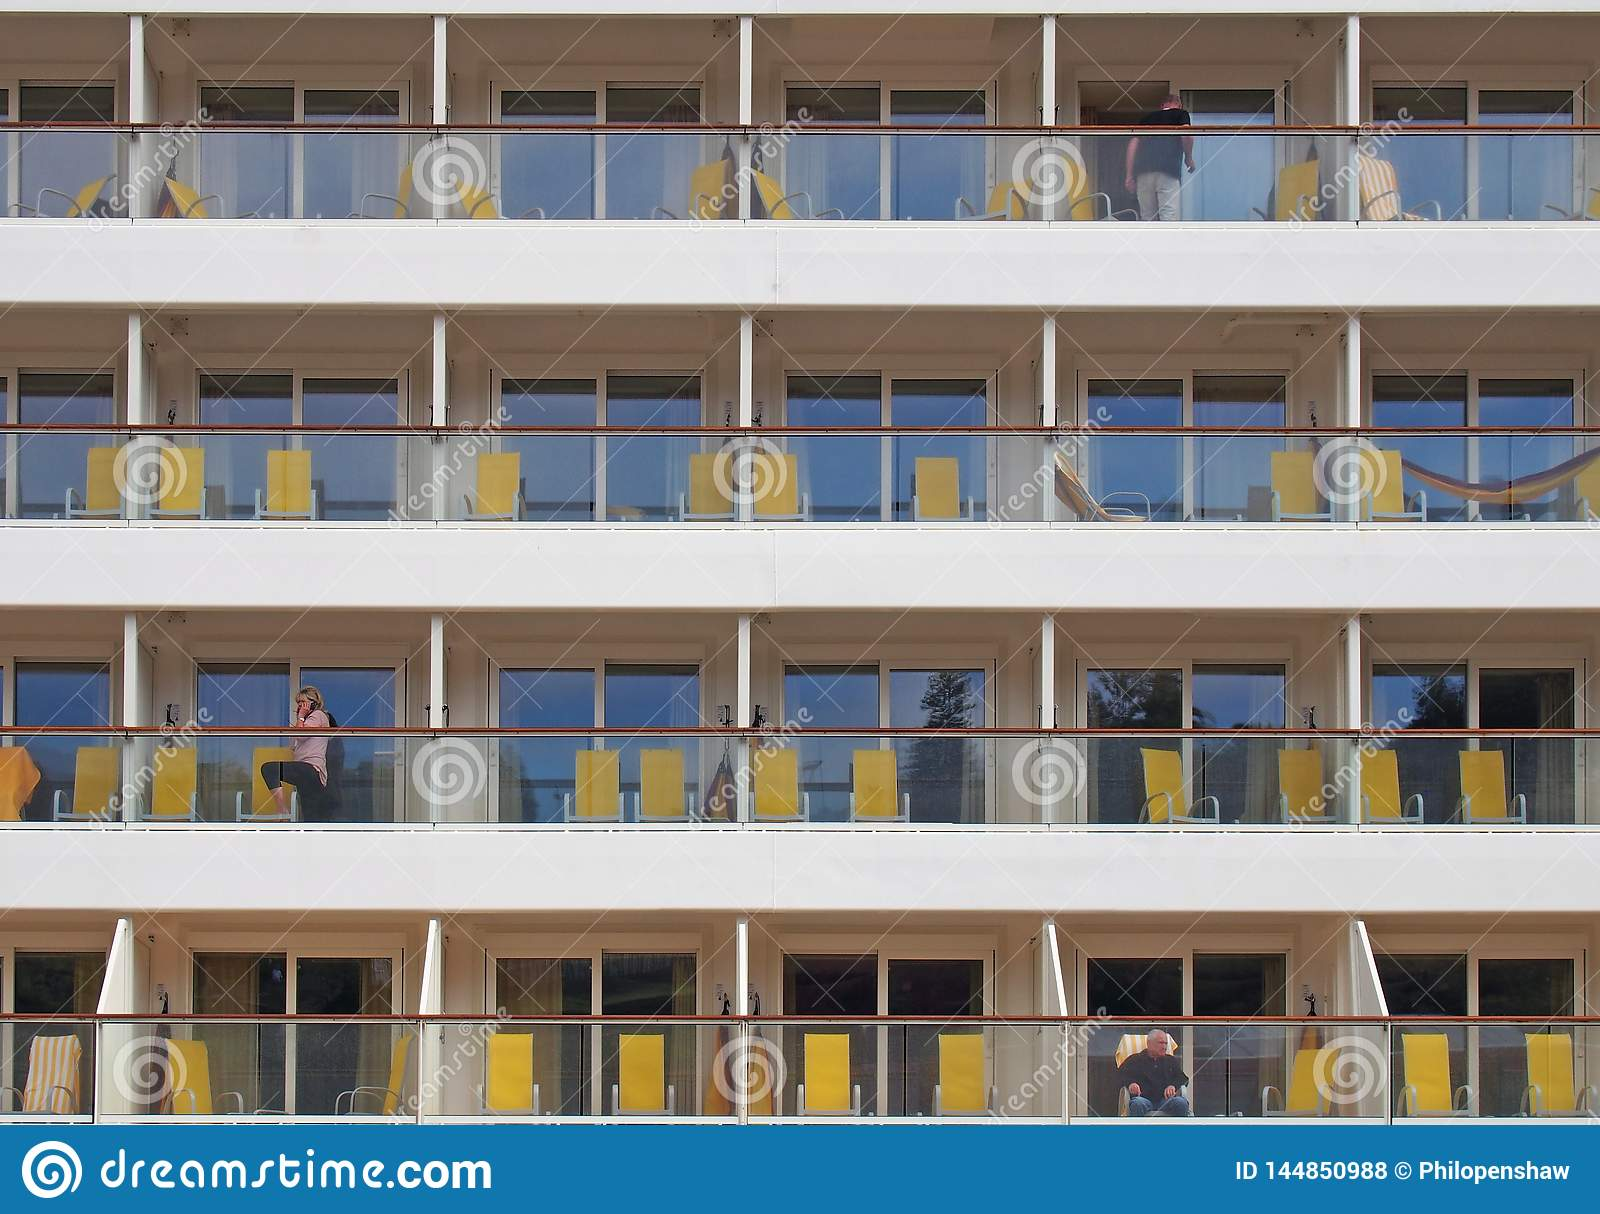 l, madeira, portugal - 13 march 2019: close up of a cruise ship moored in funchal harbor showing cabins with sun loungers and